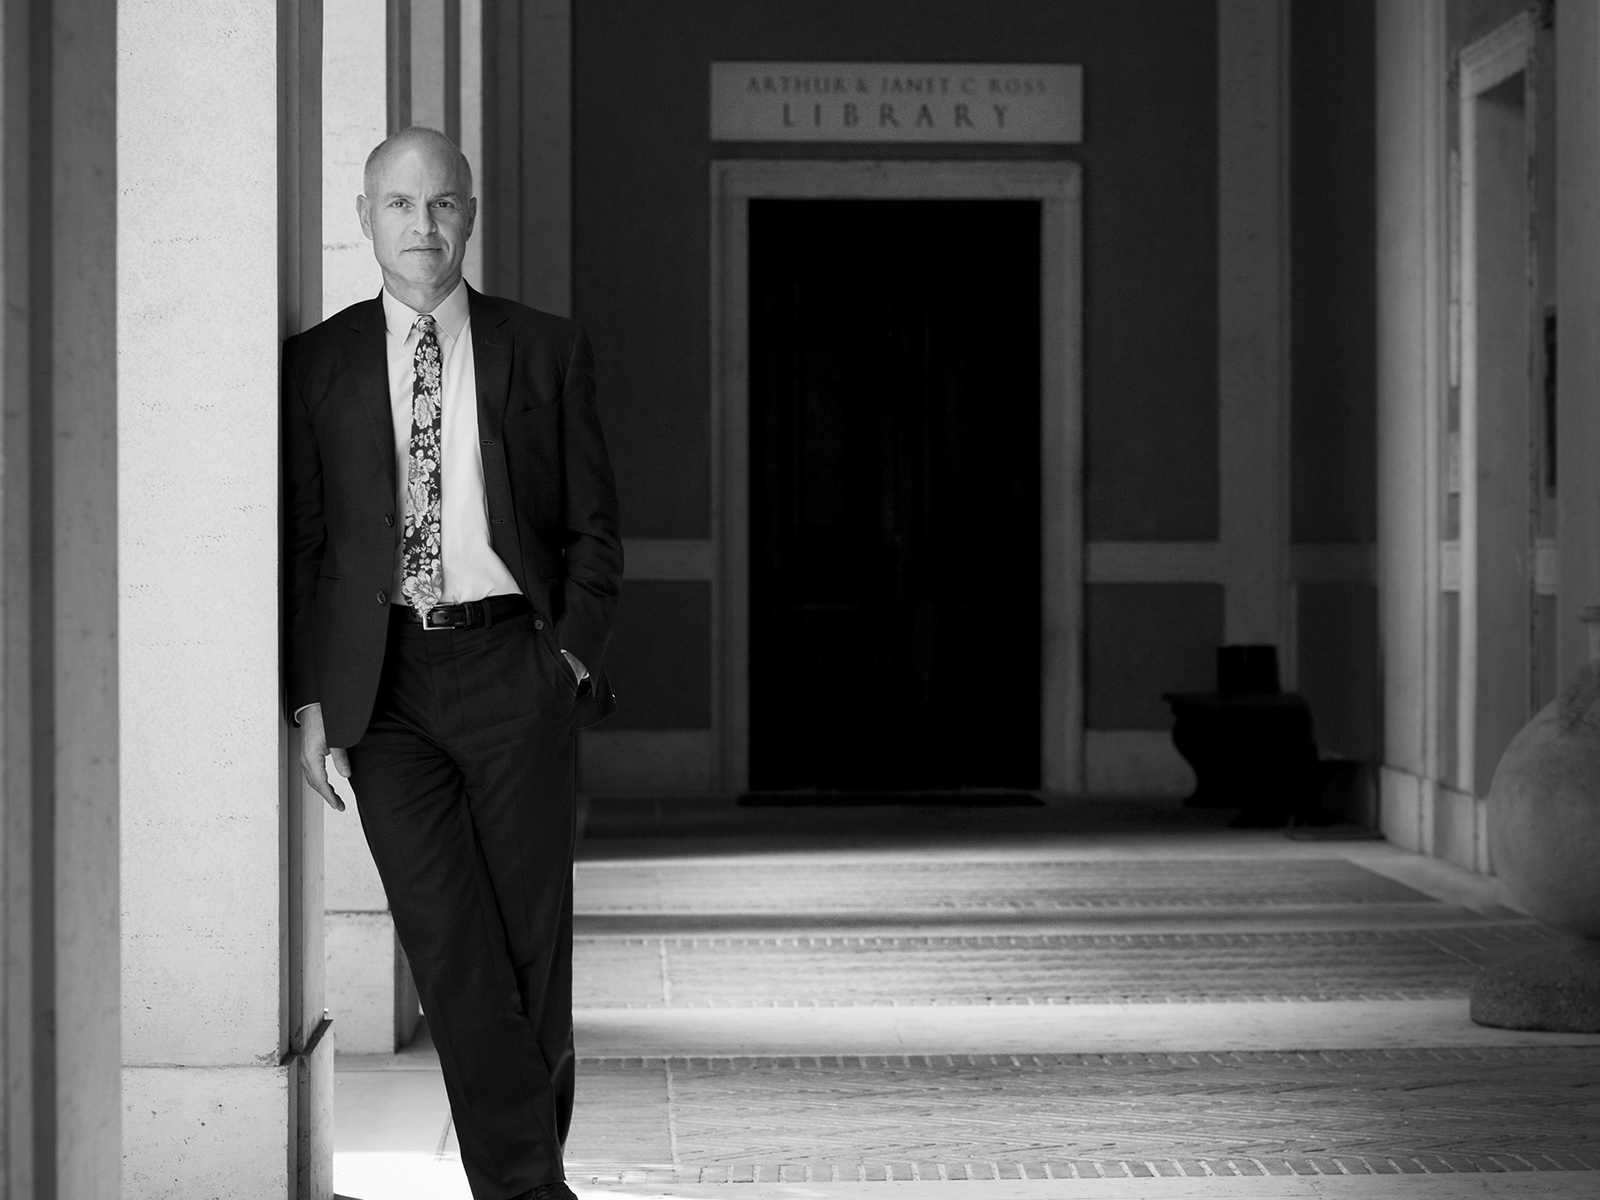 A black and white full length portrait of American Academy in Rome CEO Mark Robbins